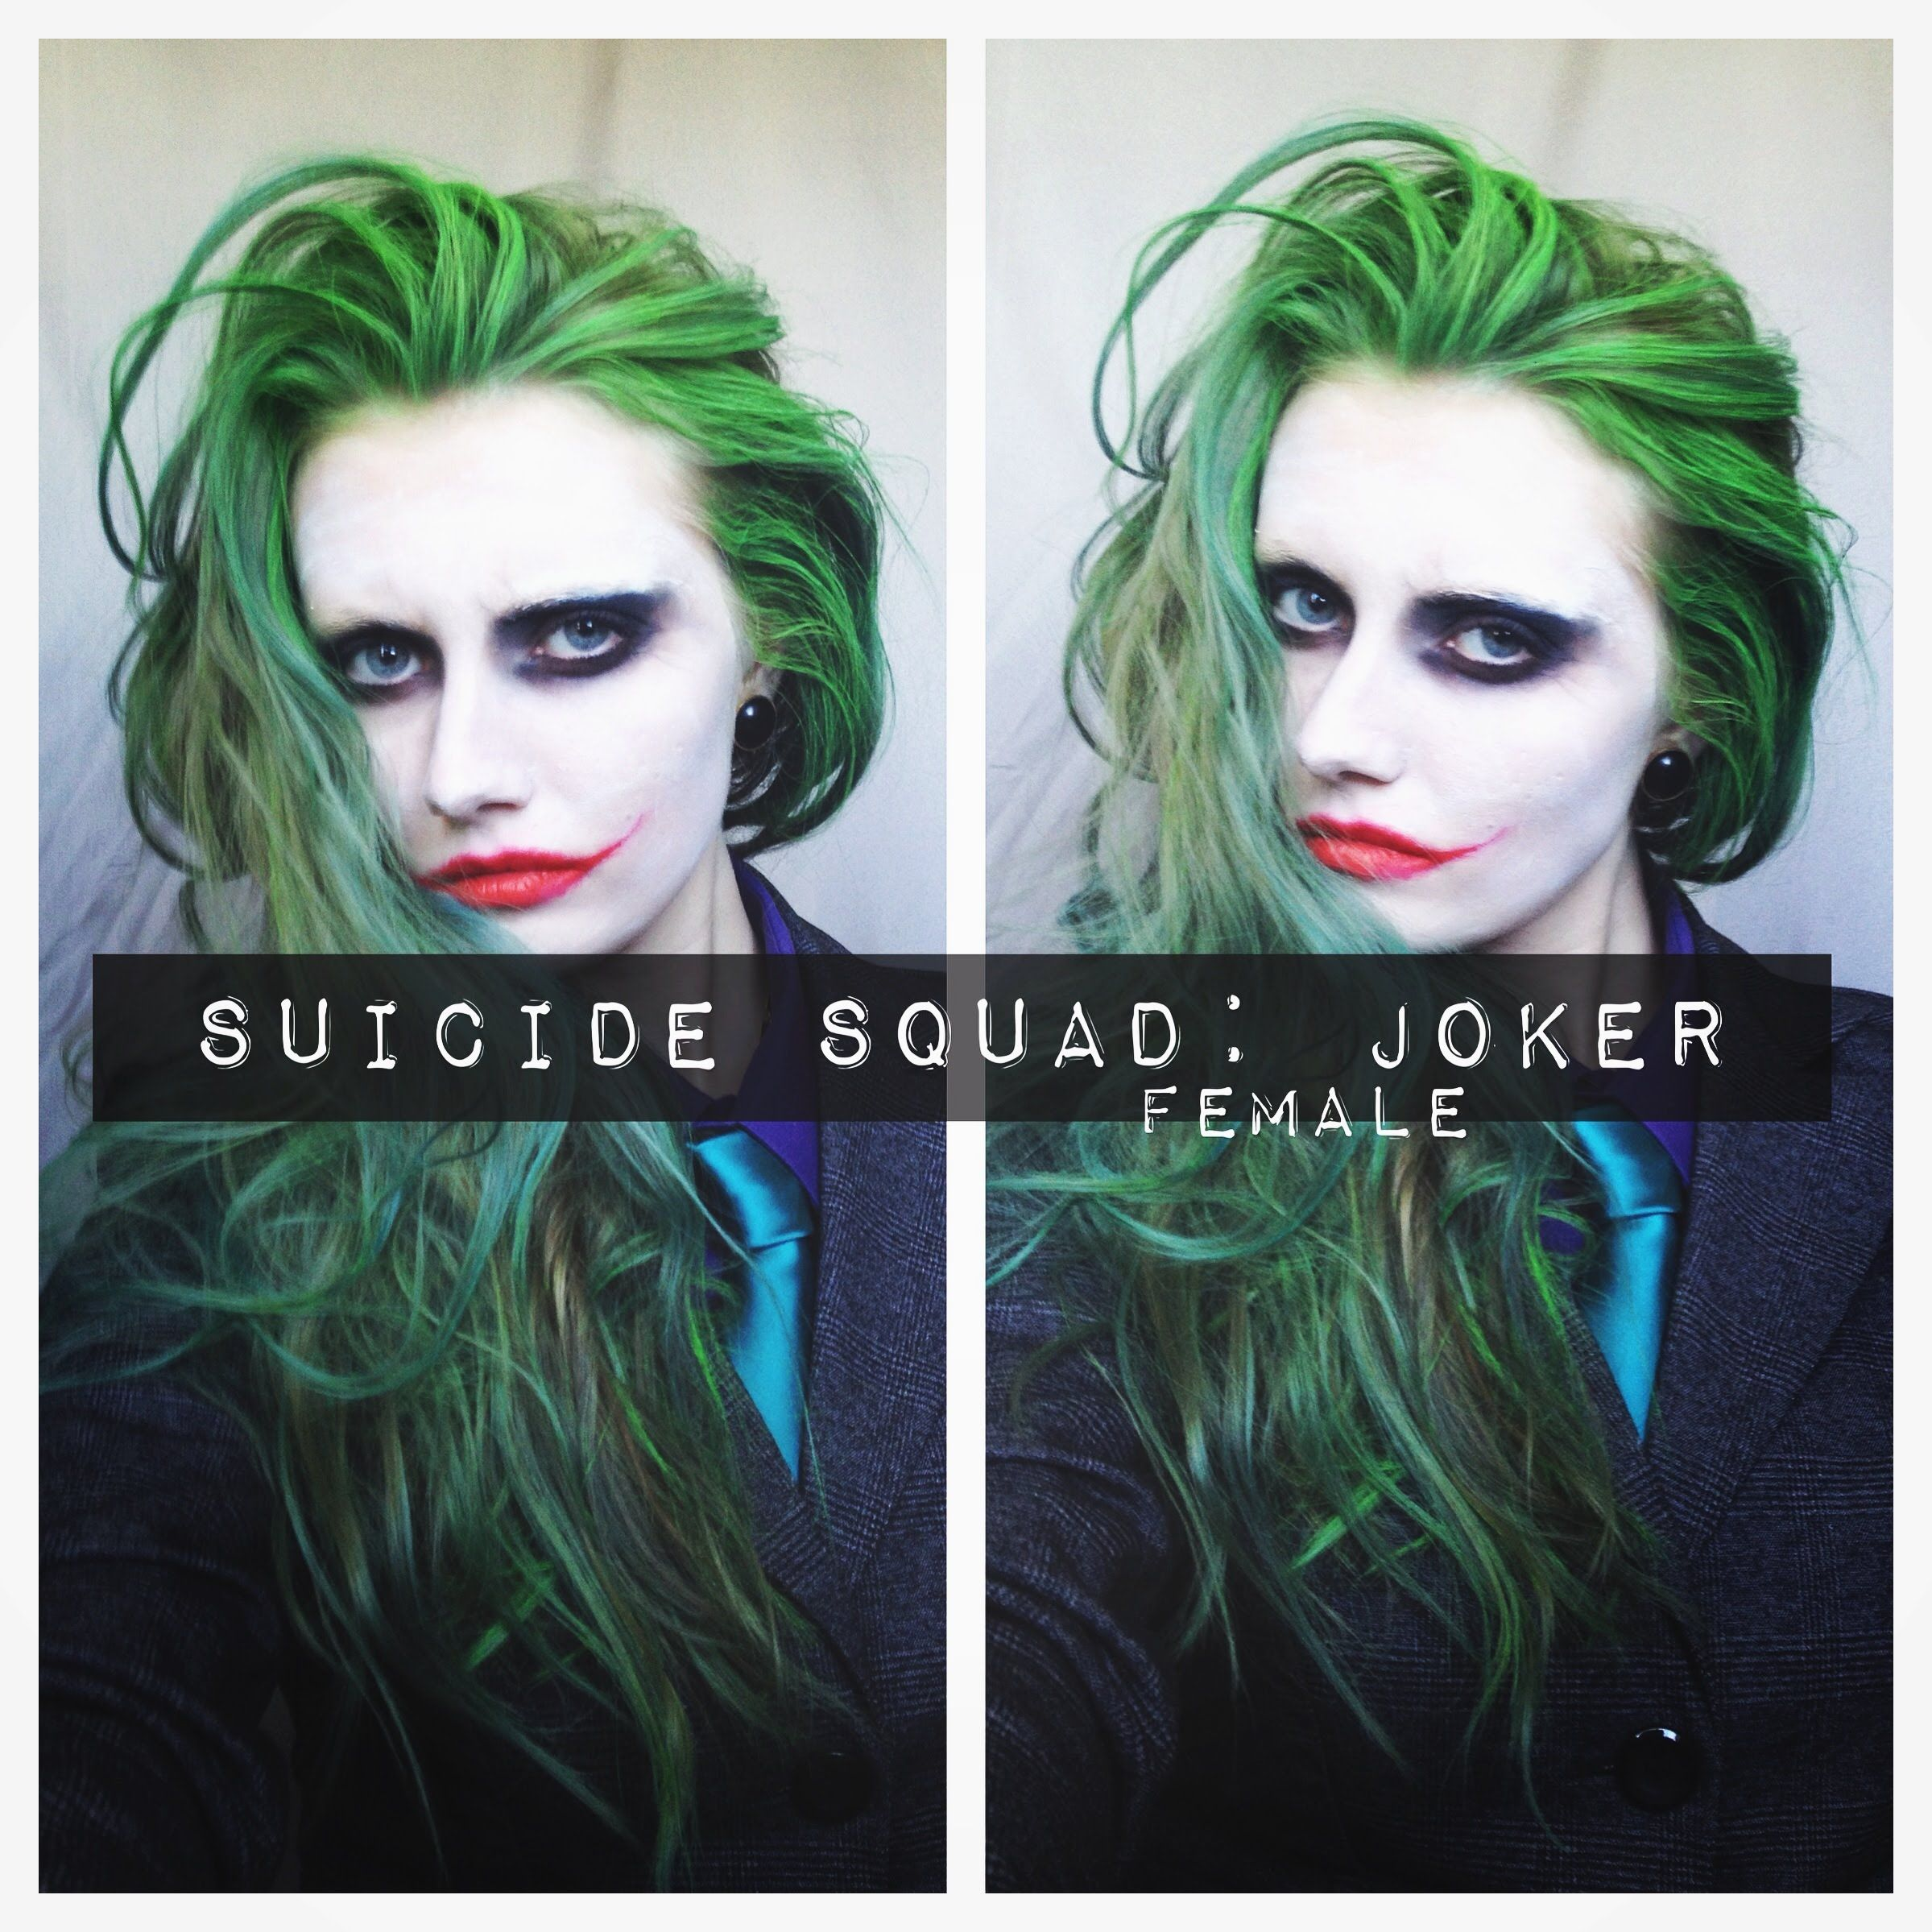 SUICIDE SQUAD: JOKER MAKEUP & HAIR (female) | Makeup and vfx ...